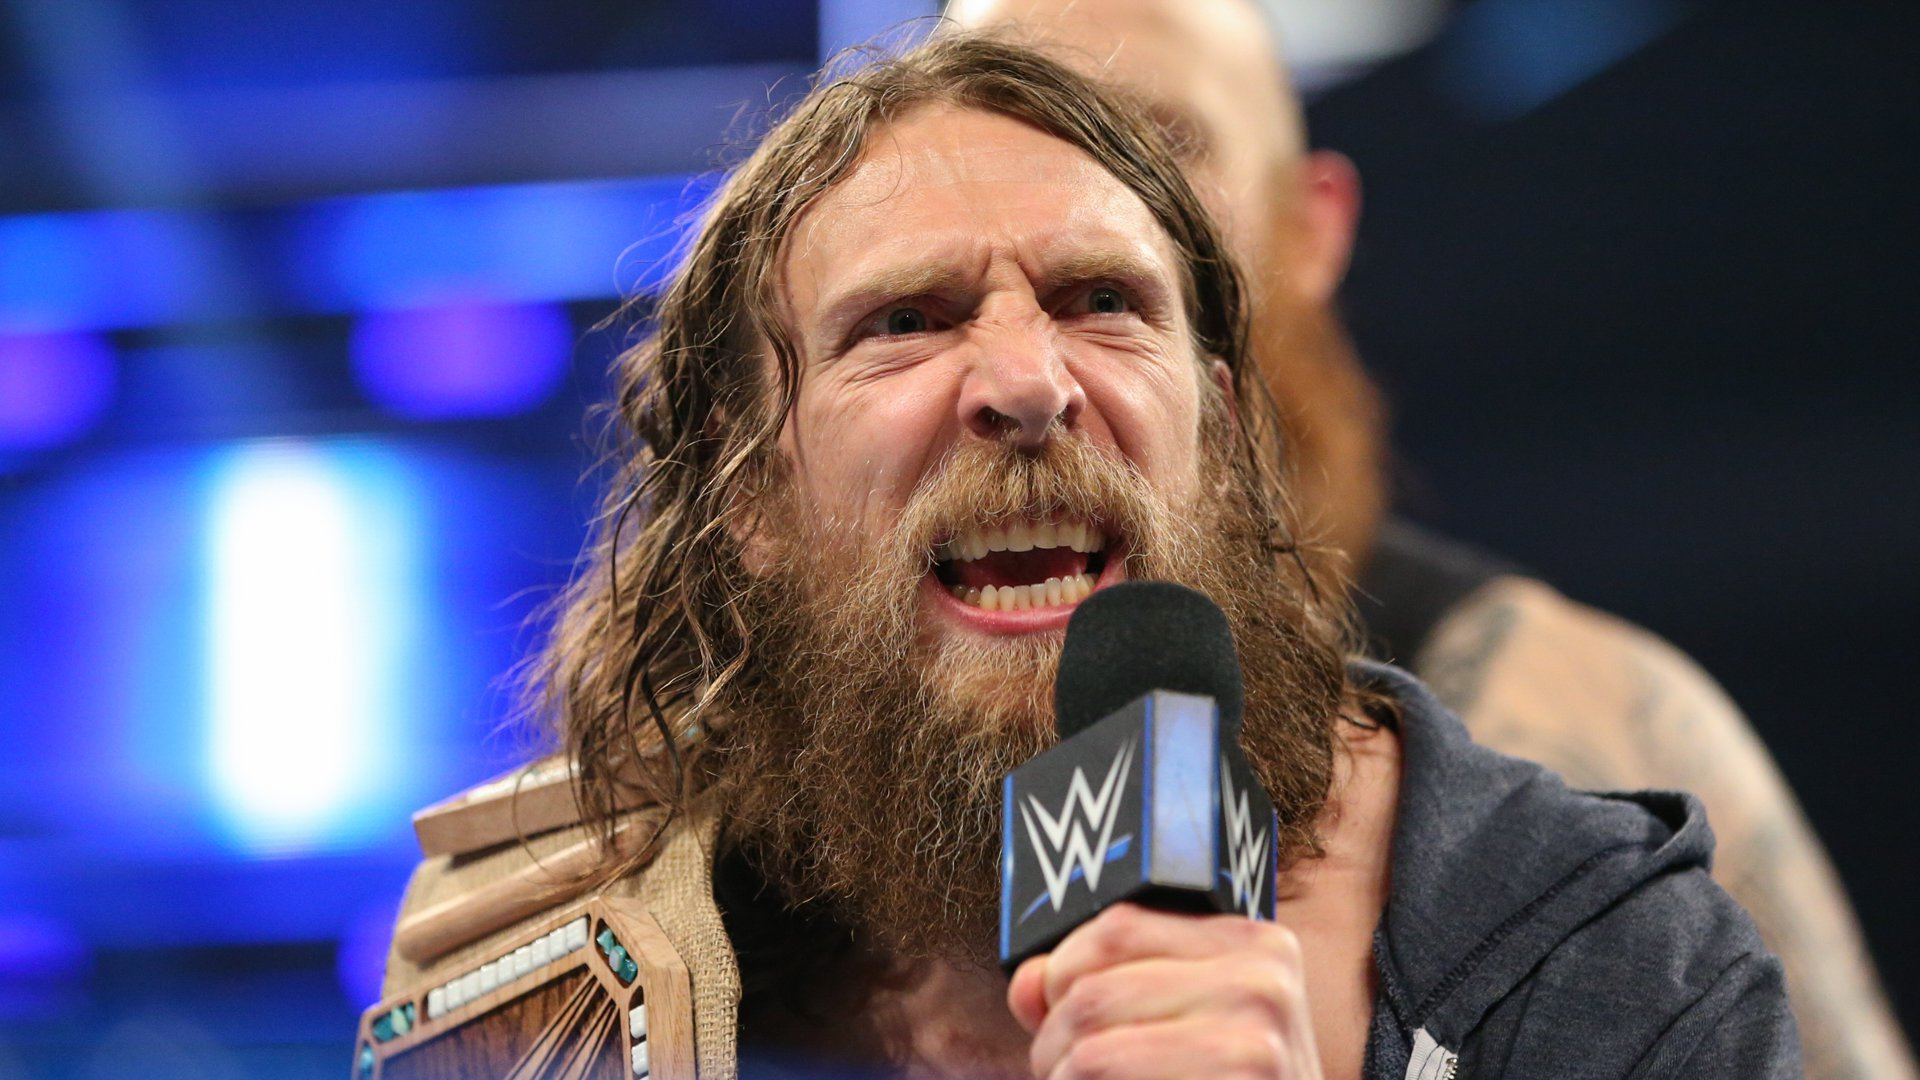 The Planet's Champion reminds the WWE Universe that Kingston lost to him inside the Elimination Chamber and lost in his previous Gauntlet Match.